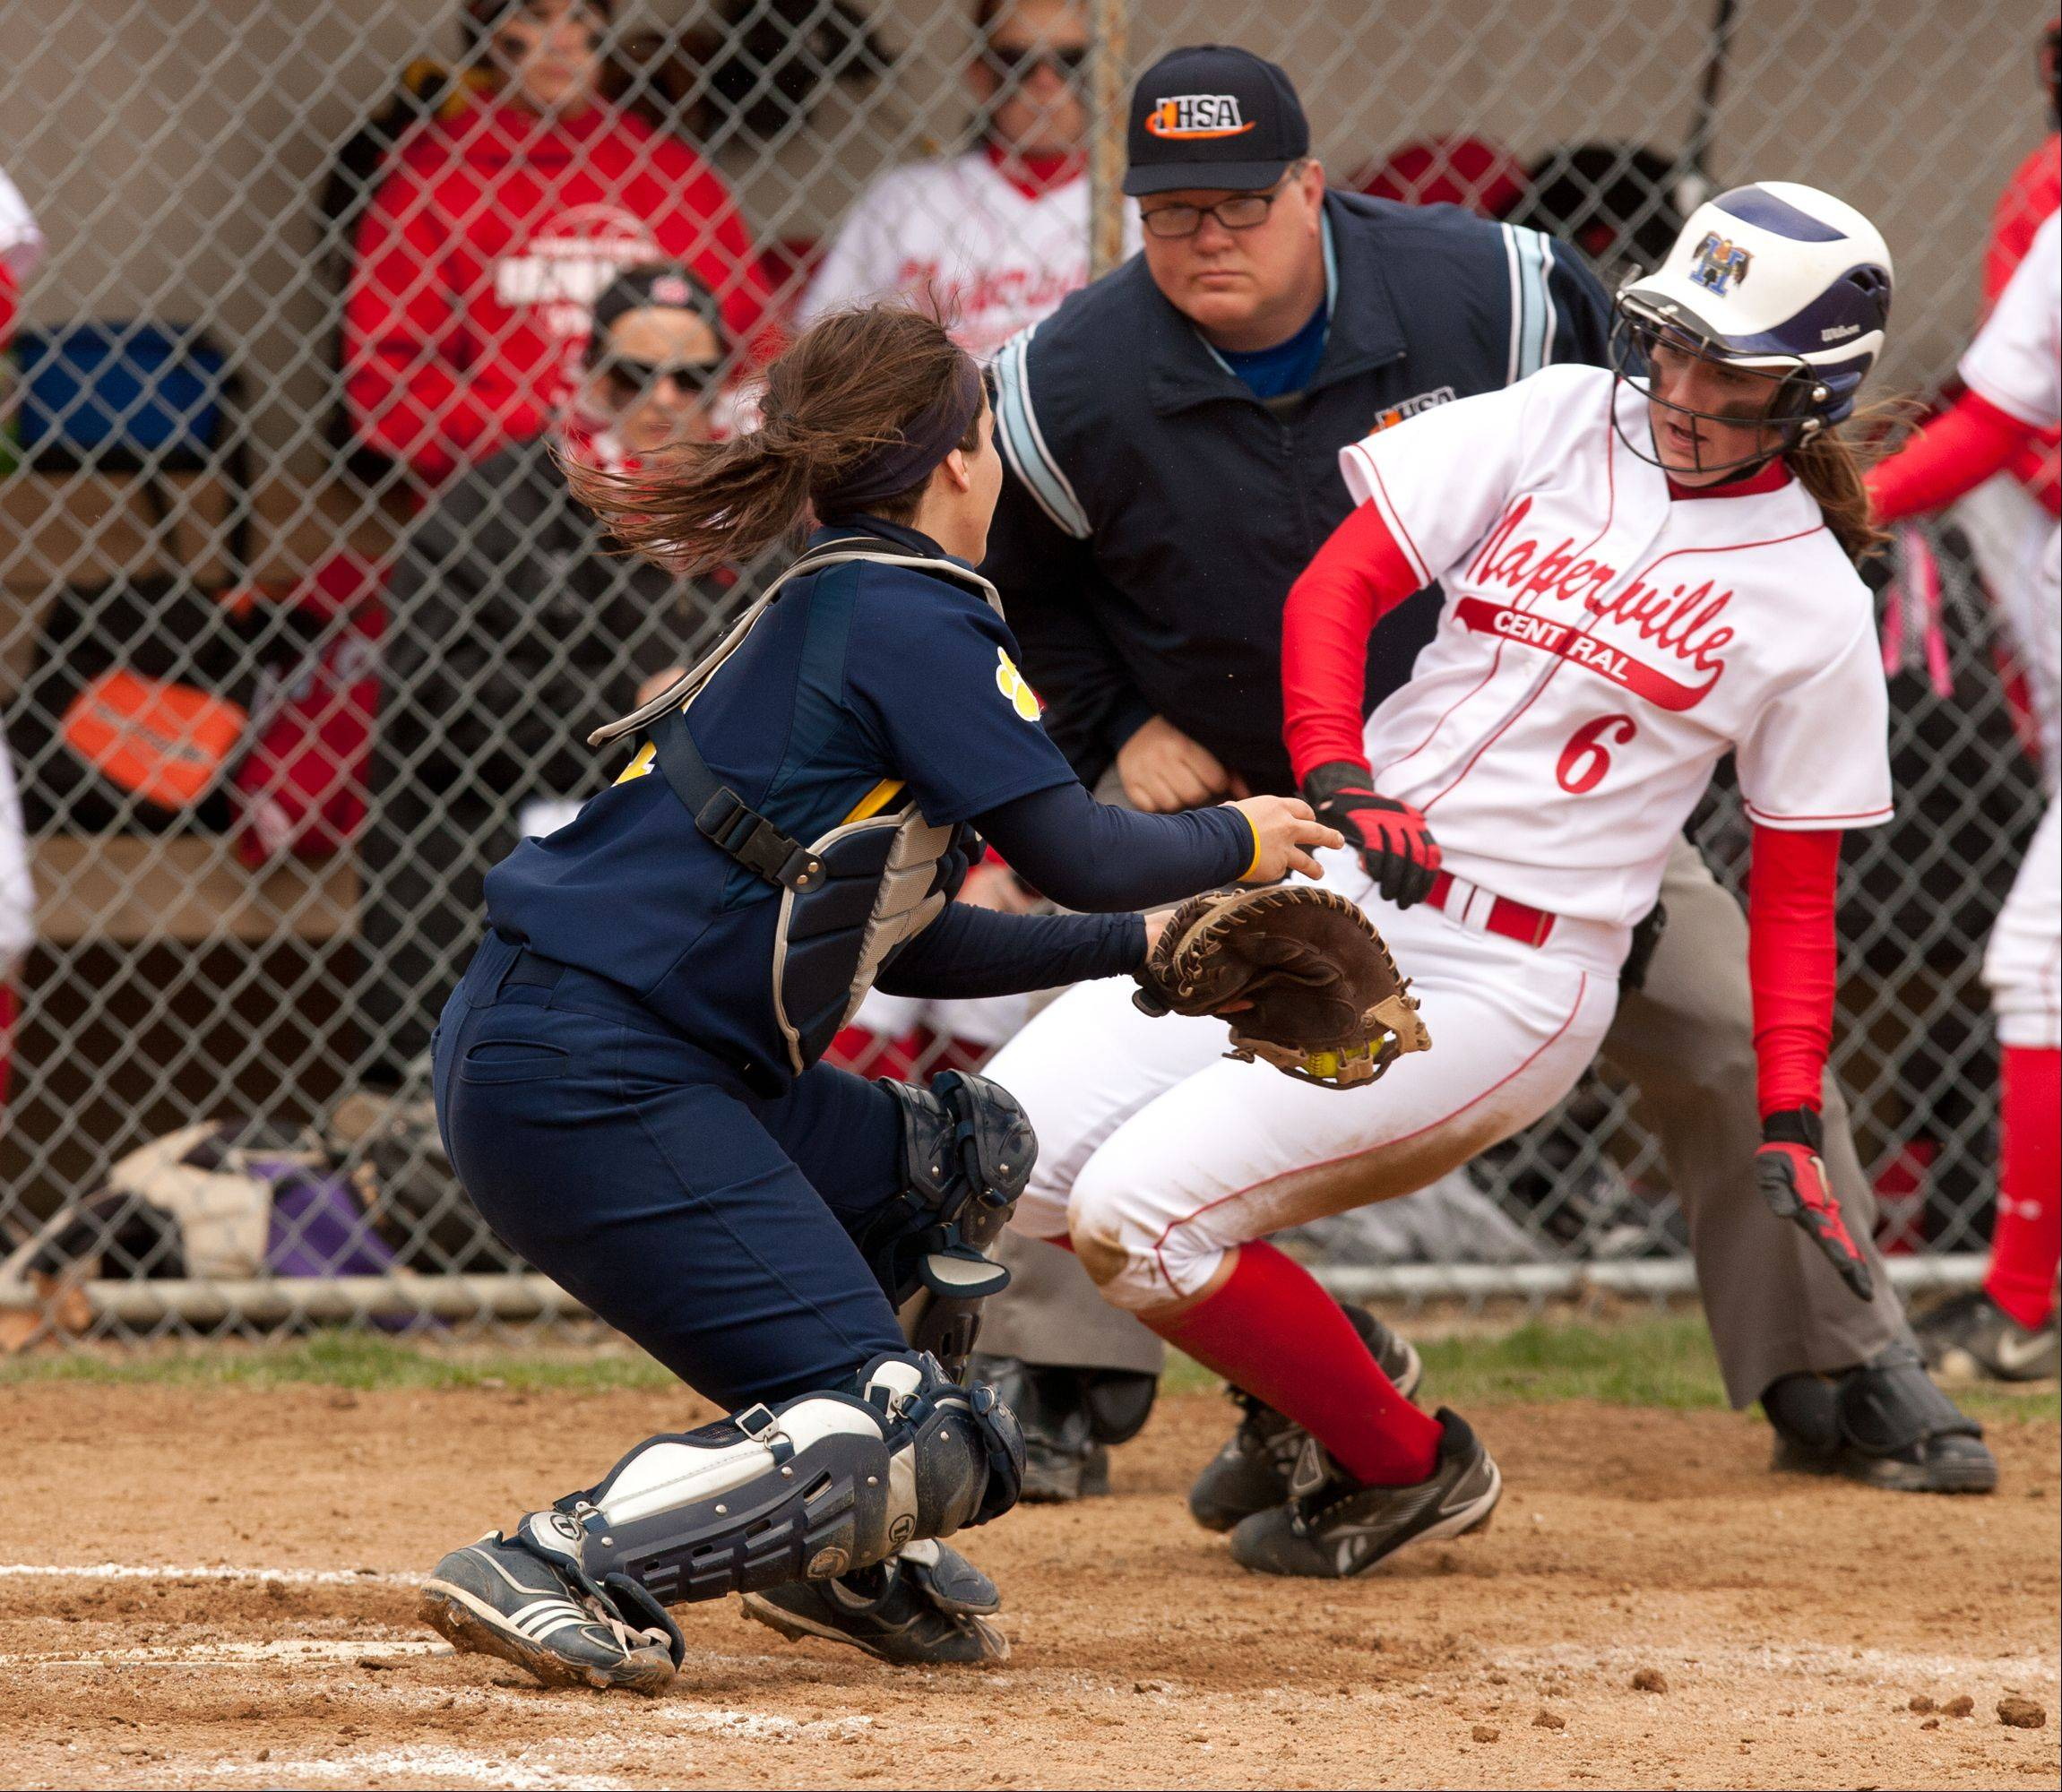 Neuqua Valley catcher Rebecca Lincoln tags out Naperville Central's Megan Nerger on Saturday at Naperville Central.